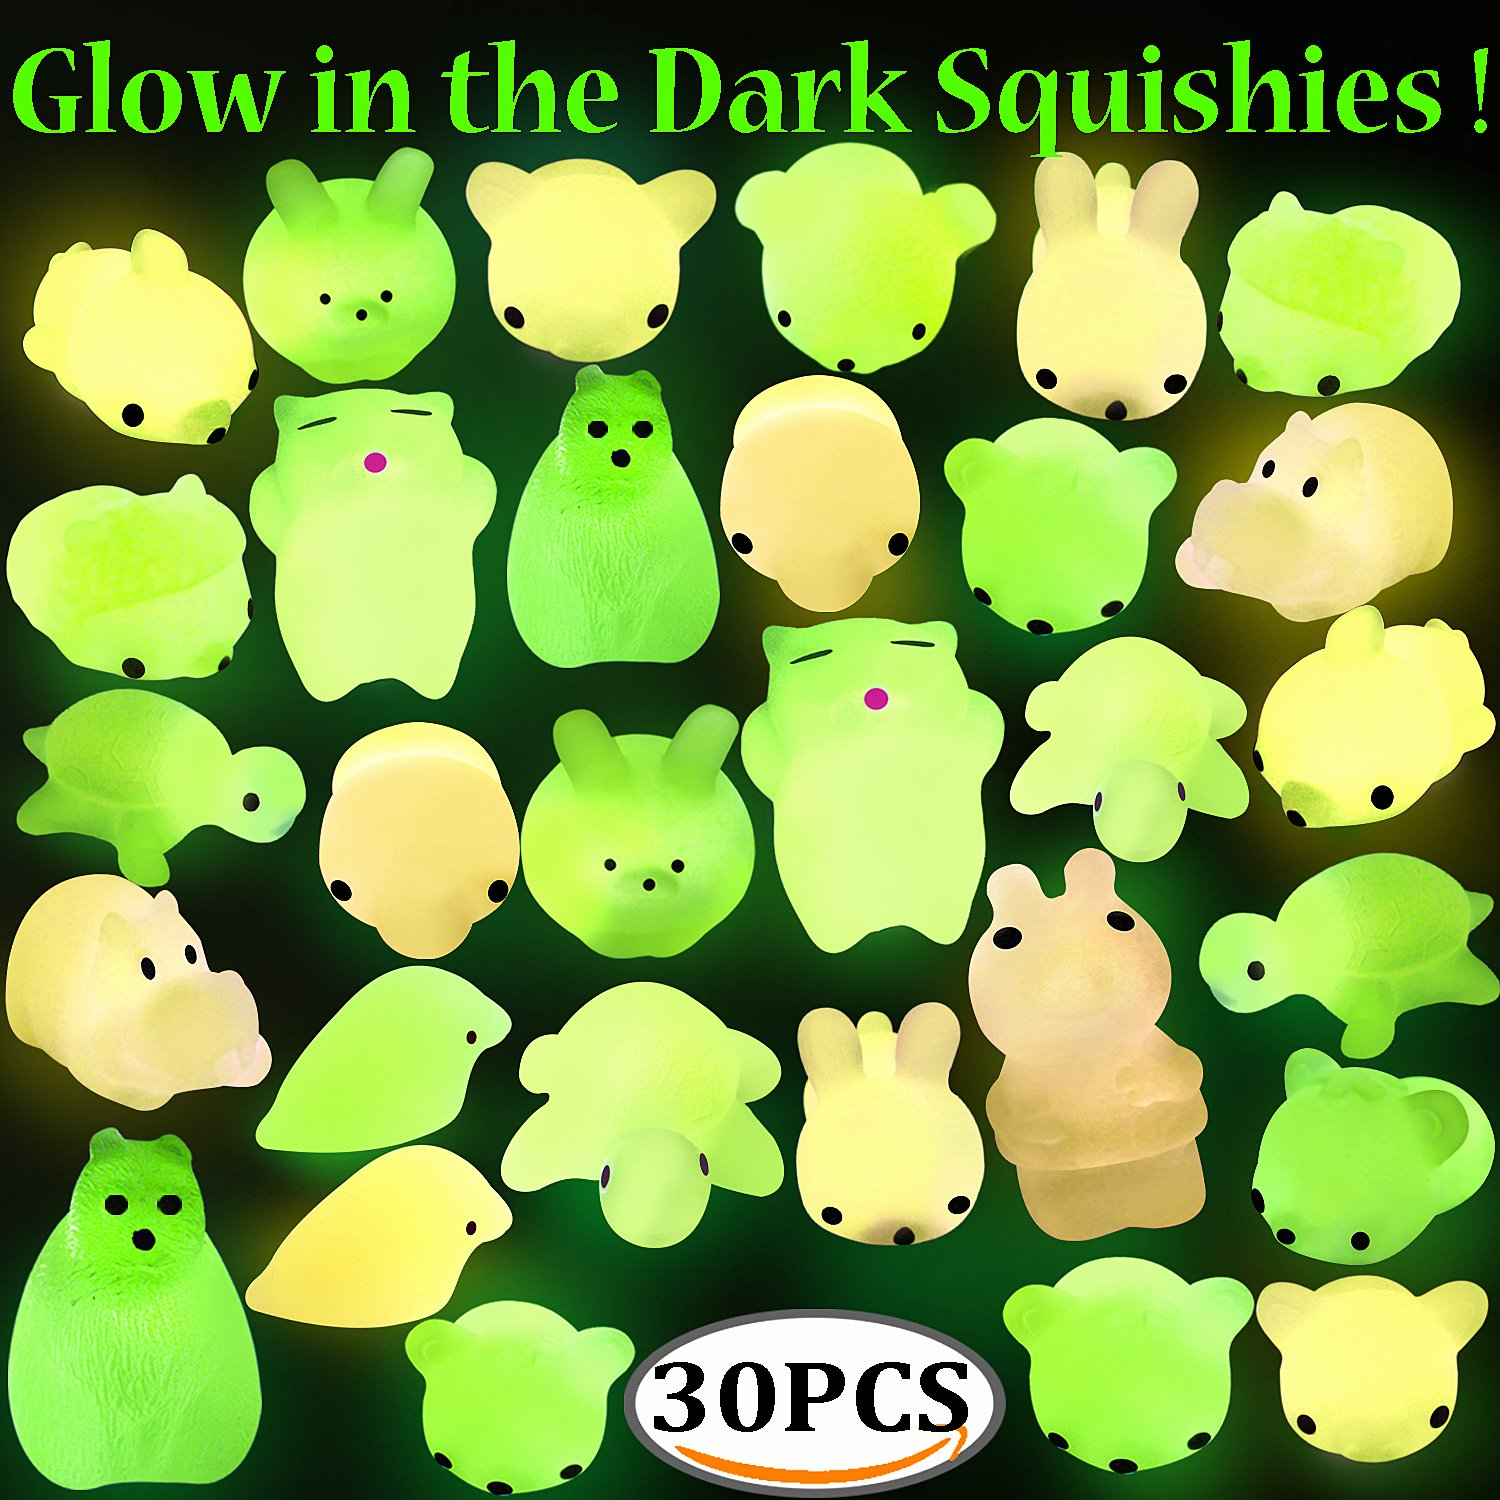 Squishy Mochi Animals, Outee 30 Pcs Glow in the Dark Squishy Mochi Animal Stress Toys Squeeze Mochi Squishy Toys Soft Squishy Stress Relief Toys Squishy Squeeze